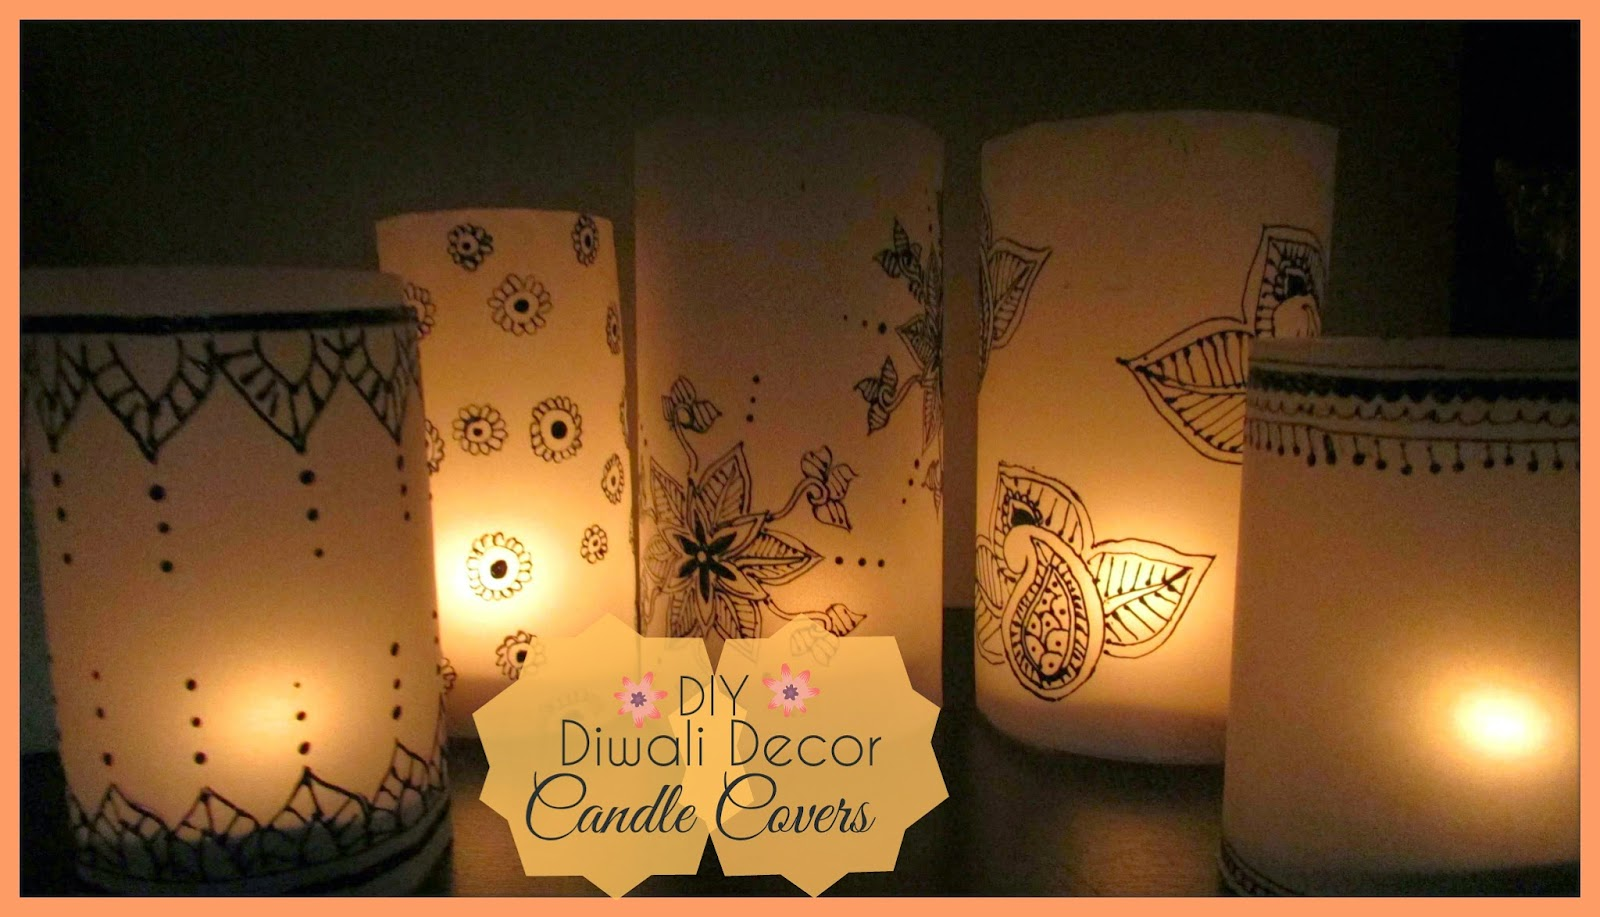 colorful diwali decor, diwali, diwali decor, DIY diwali decor, DIY candle covers, DIY candle shades, how to decorate hose for diwali, how to make candle covers, how to make candle shades at home, candle, diwali candles, candles, white candles, diwali candles, how to decorate candles, decorating candles, designer candles, candles stands, how to make designer candles, how to make designer candles at home, how to make candle stands, how to make candle stands at home, how to make lanp shades, how to make candle shades at home, heena candles,heena design candles, heena design candles at home